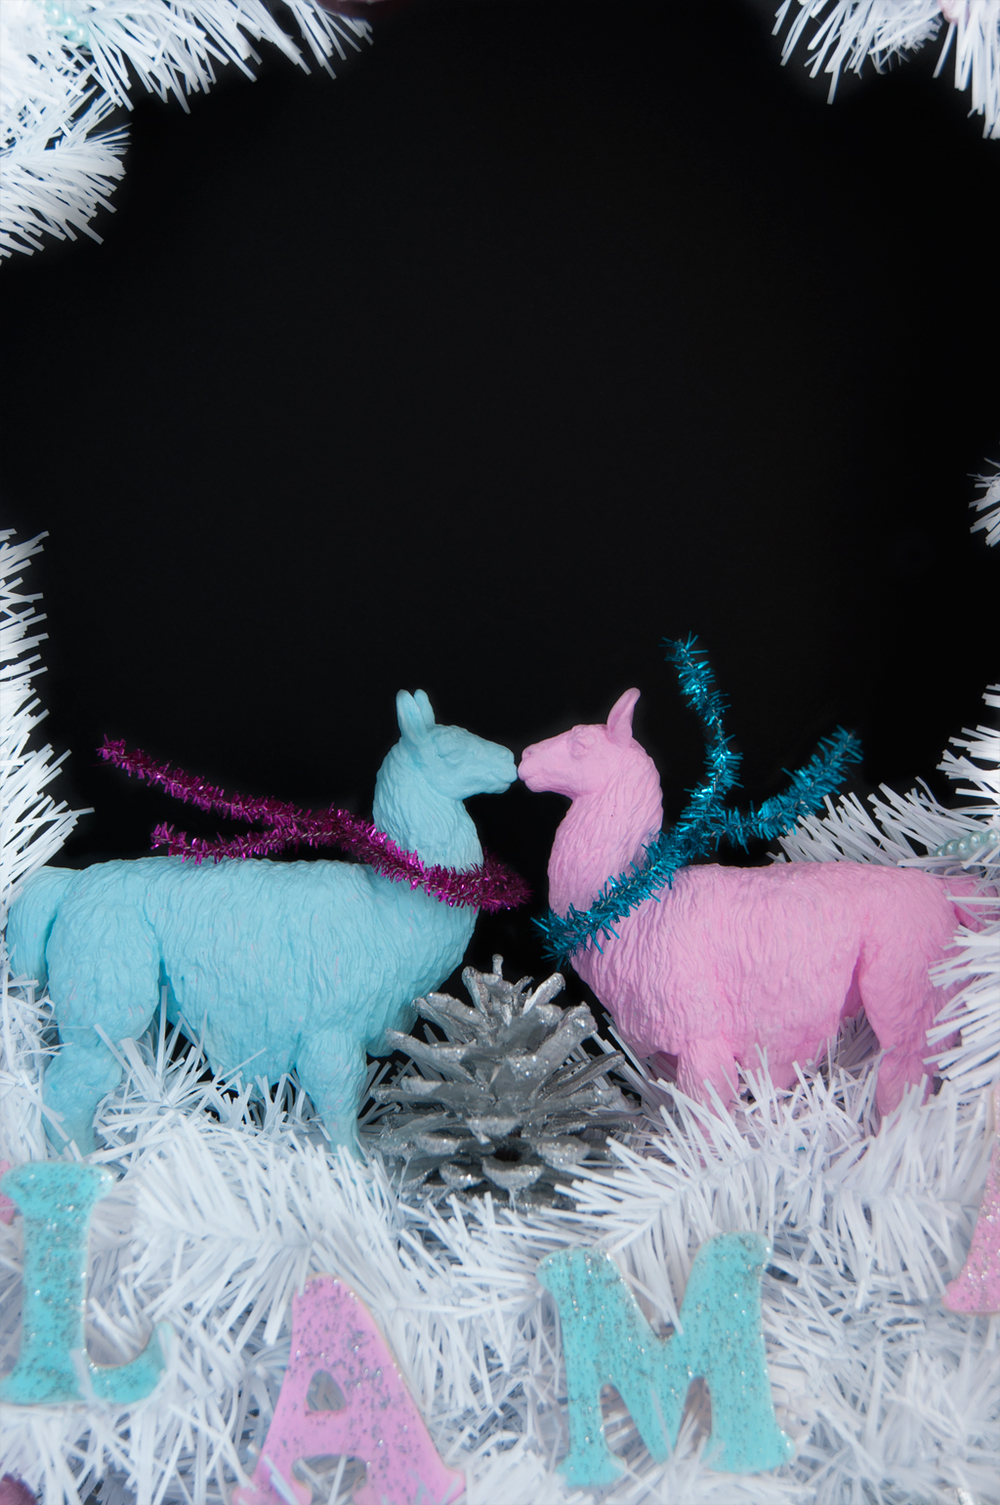 Deck the Halls with cheerful llamas! Retro Holiday Wreath with a twist - FA LA LLAMA